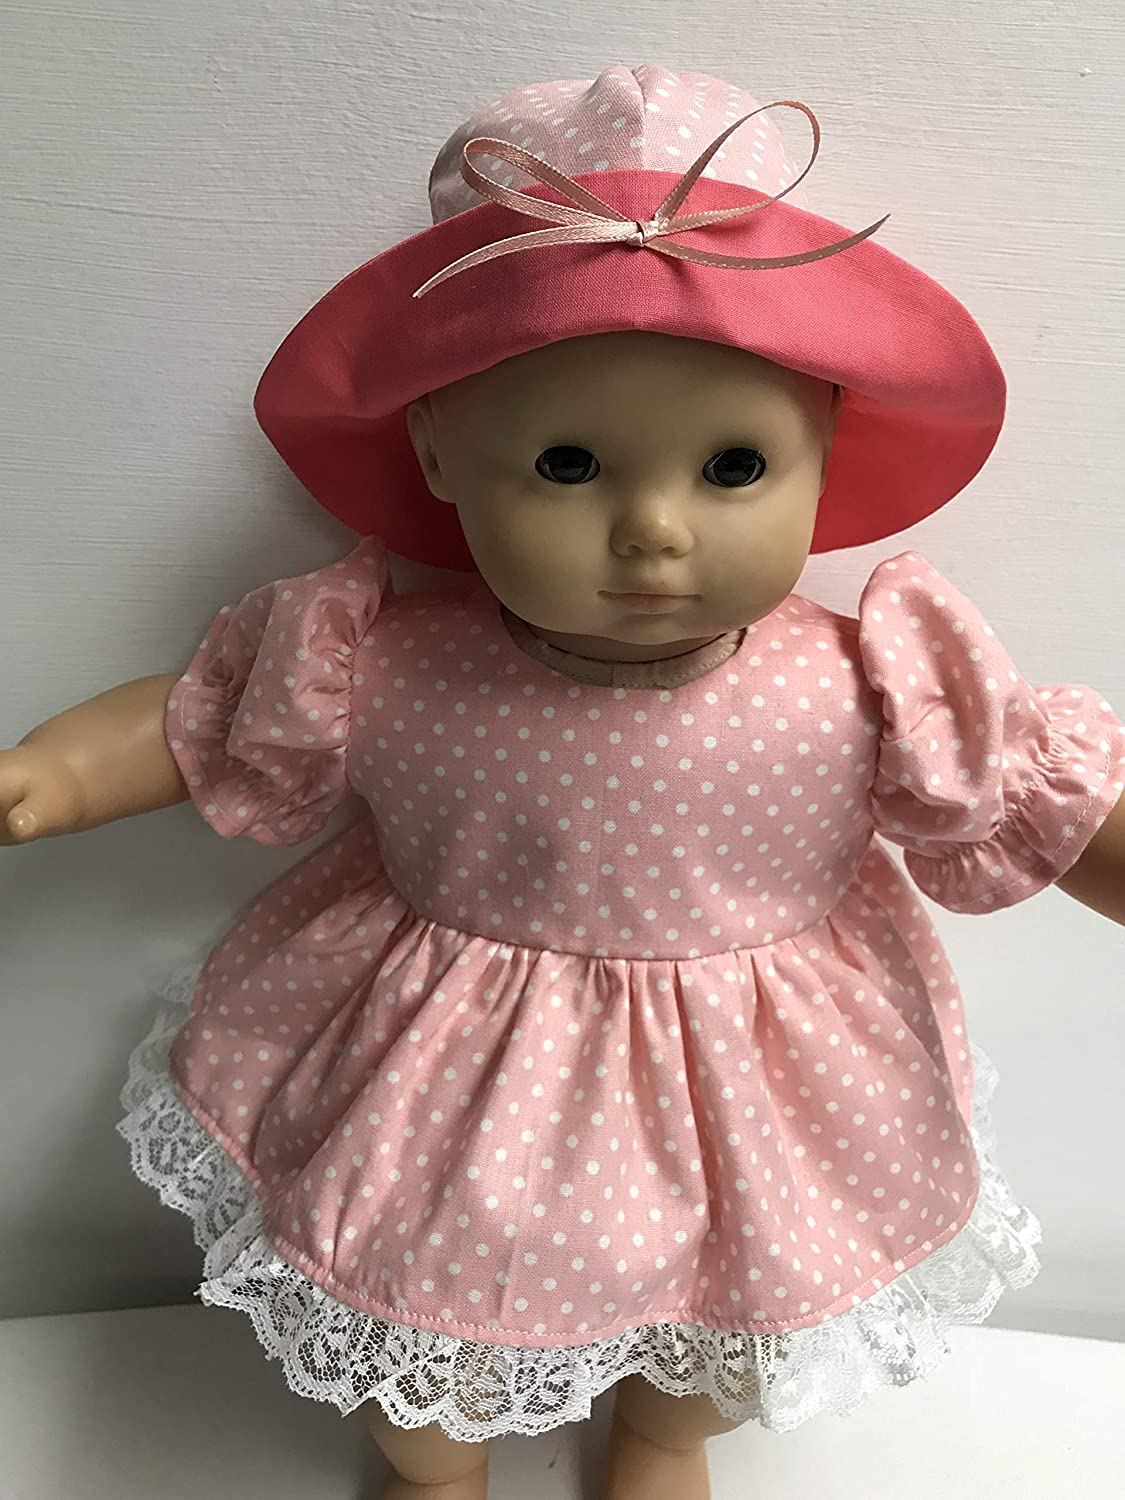 Doll Outfit for American Girl 15' Bitty Baby